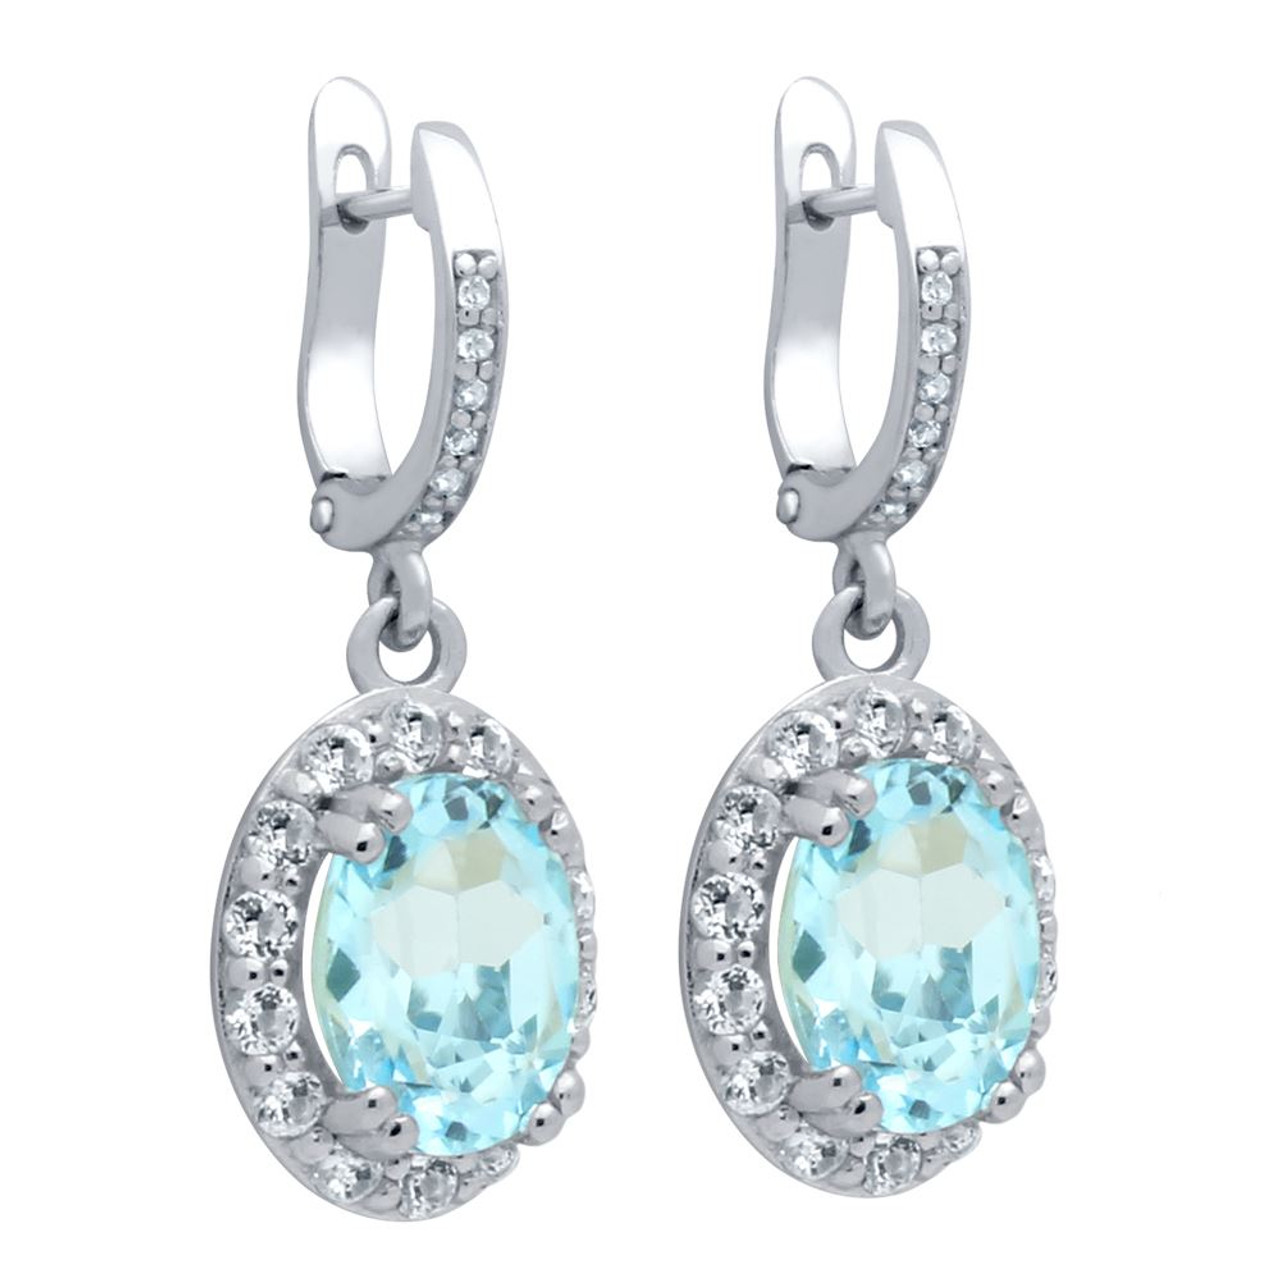 products store image earrings sterling rainbow atperrys topaz com myshopify matans silver product mystic